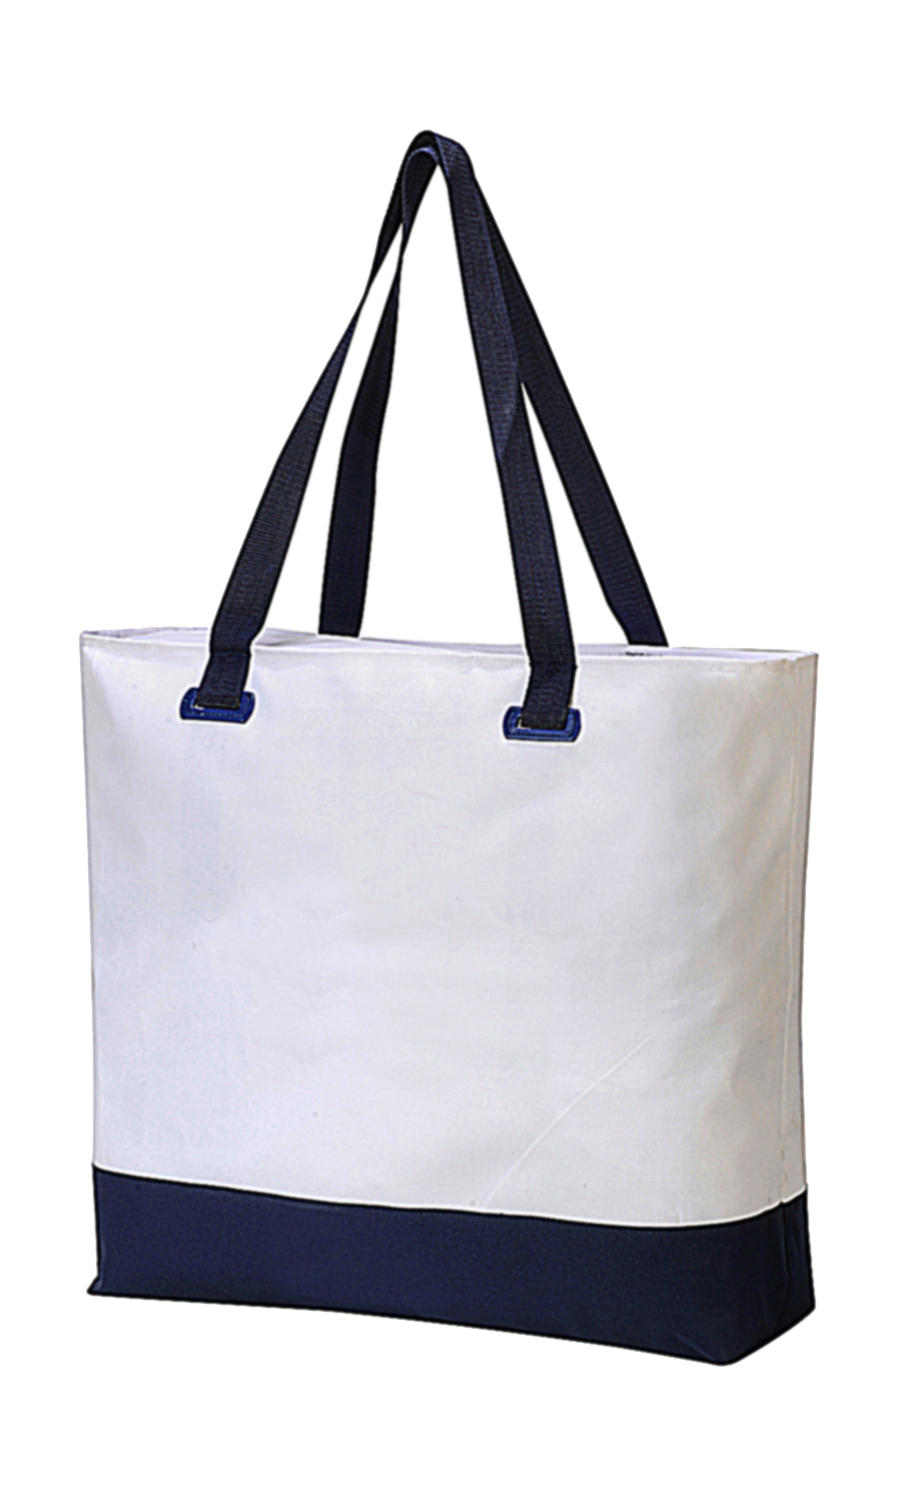 Bürmoos Wellness Leisure Bag